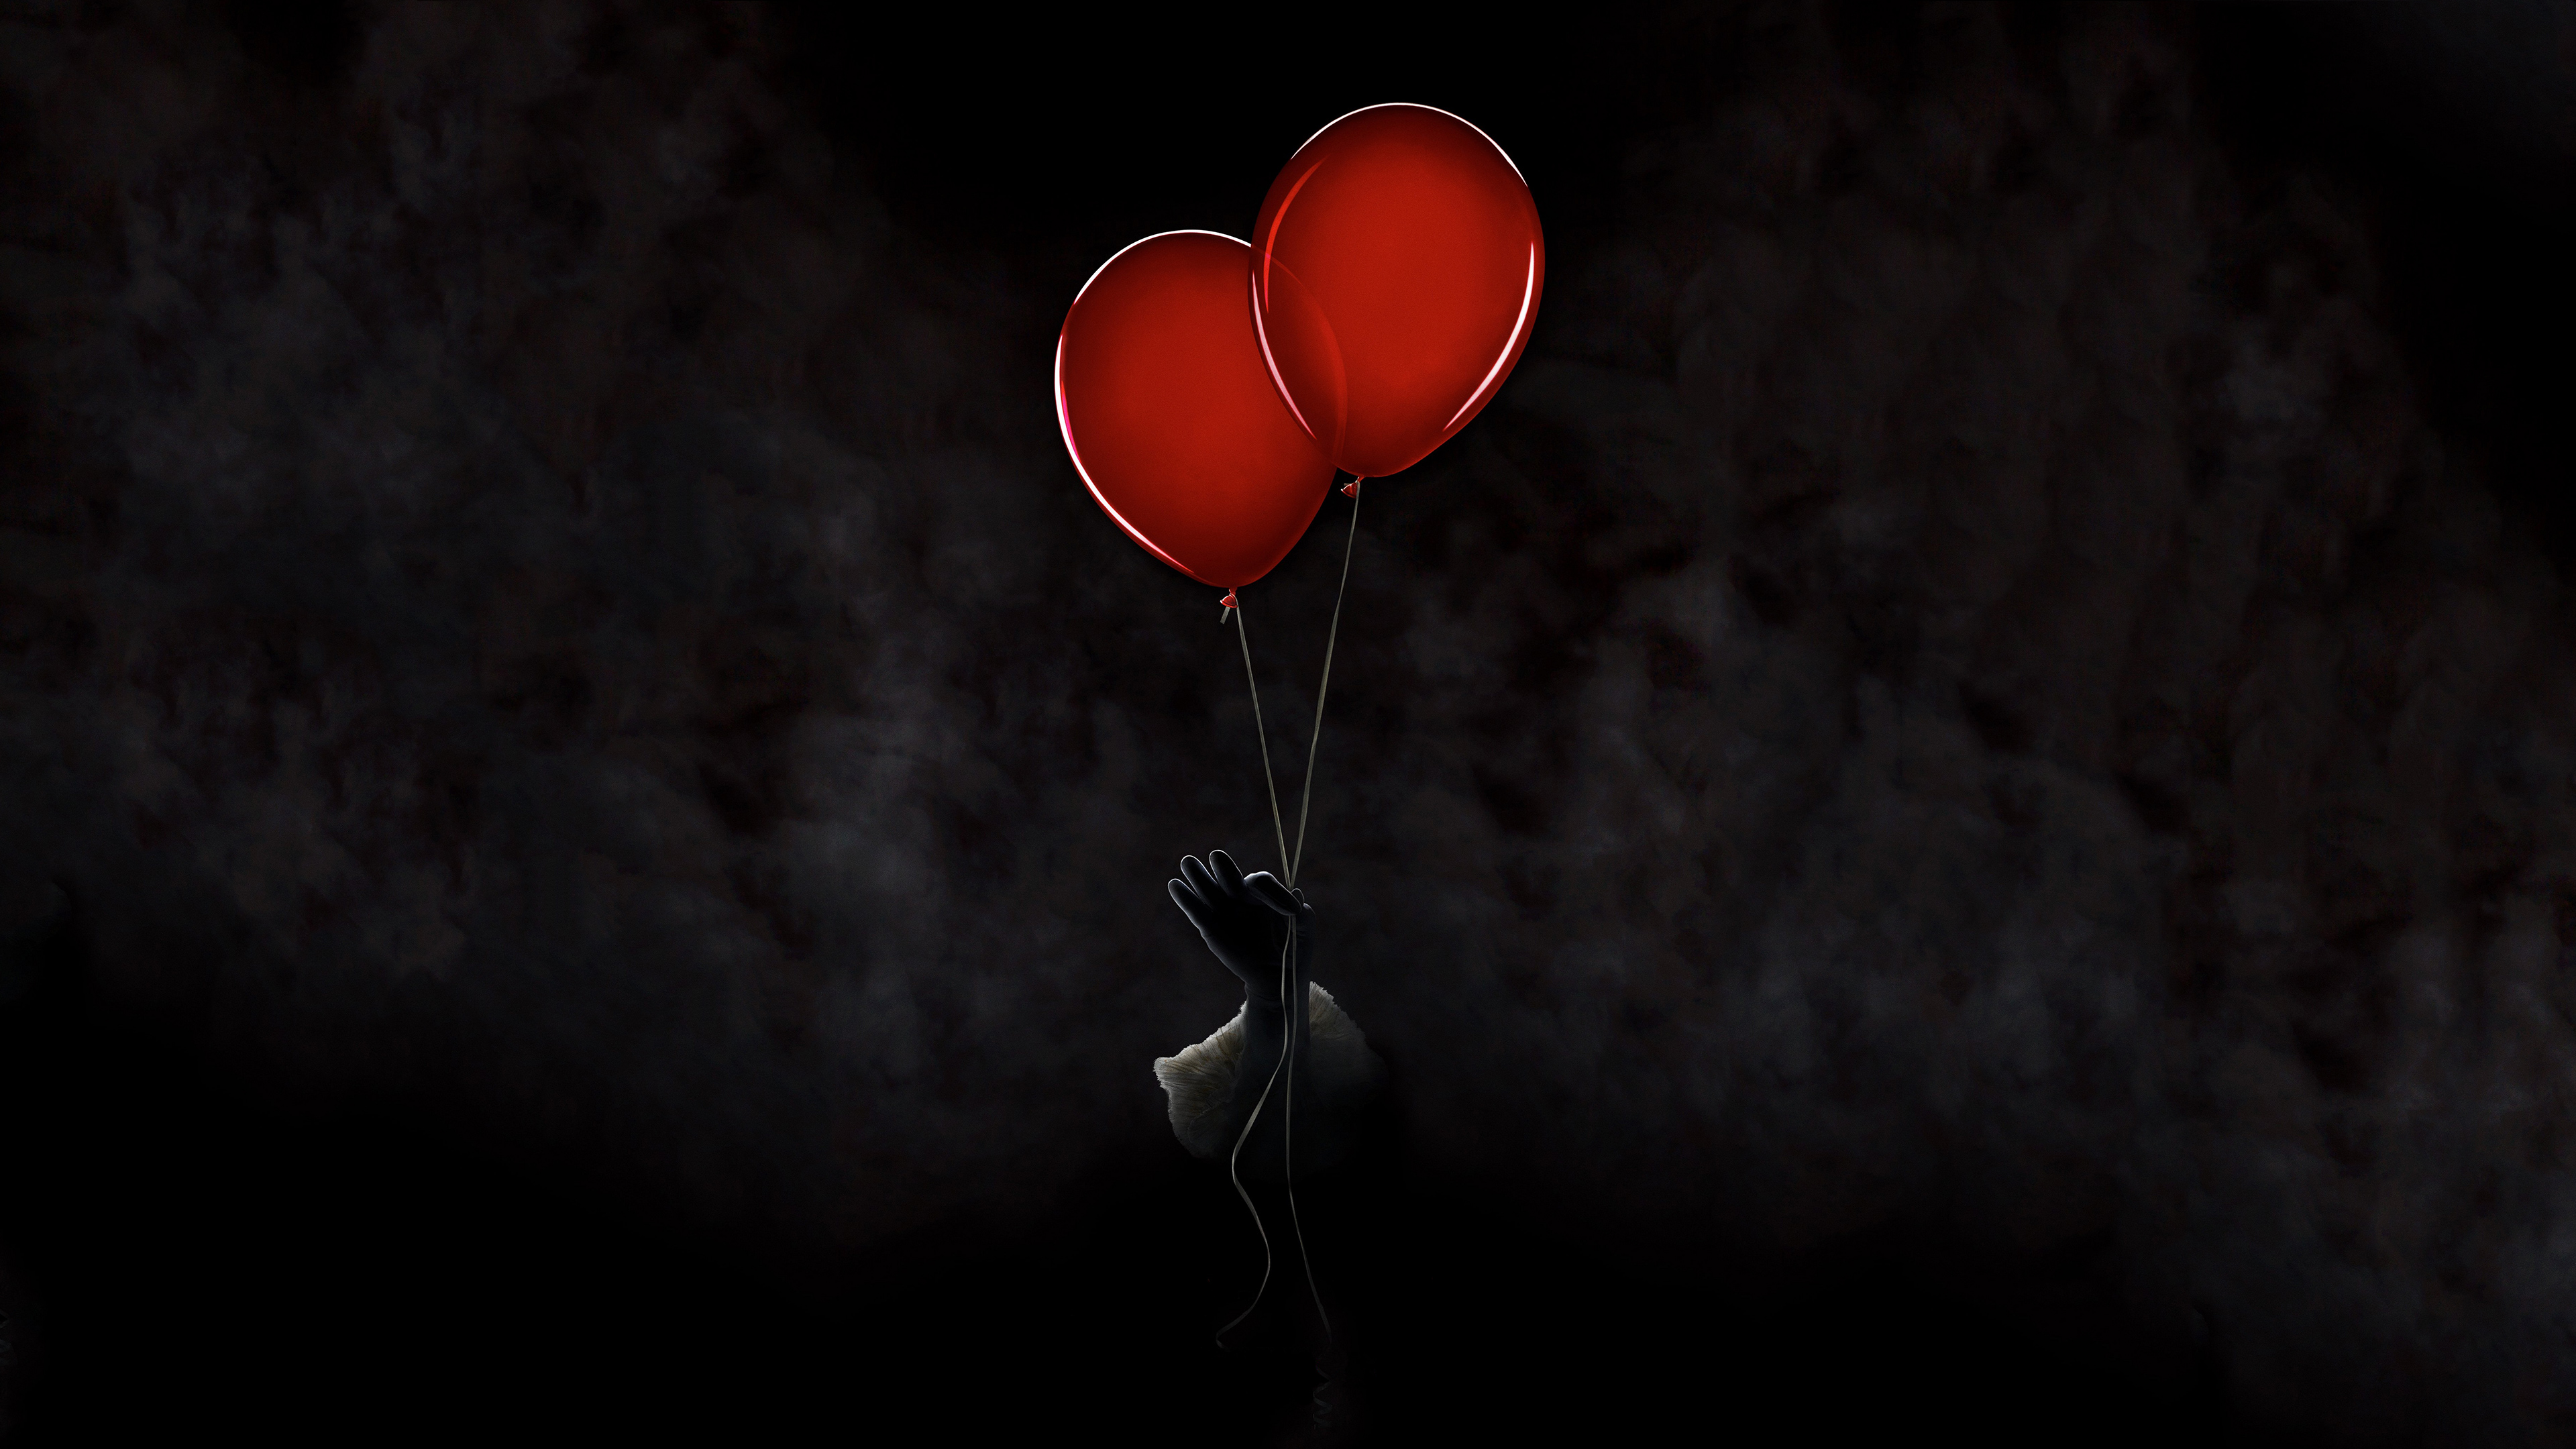 it chapter two 1558220184 - It Chapter Two - movies wallpapers, it wallpapers, it chapter two wallpapers, hd-wallpapers, 4k-wallpapers, 2019 movies wallpapers